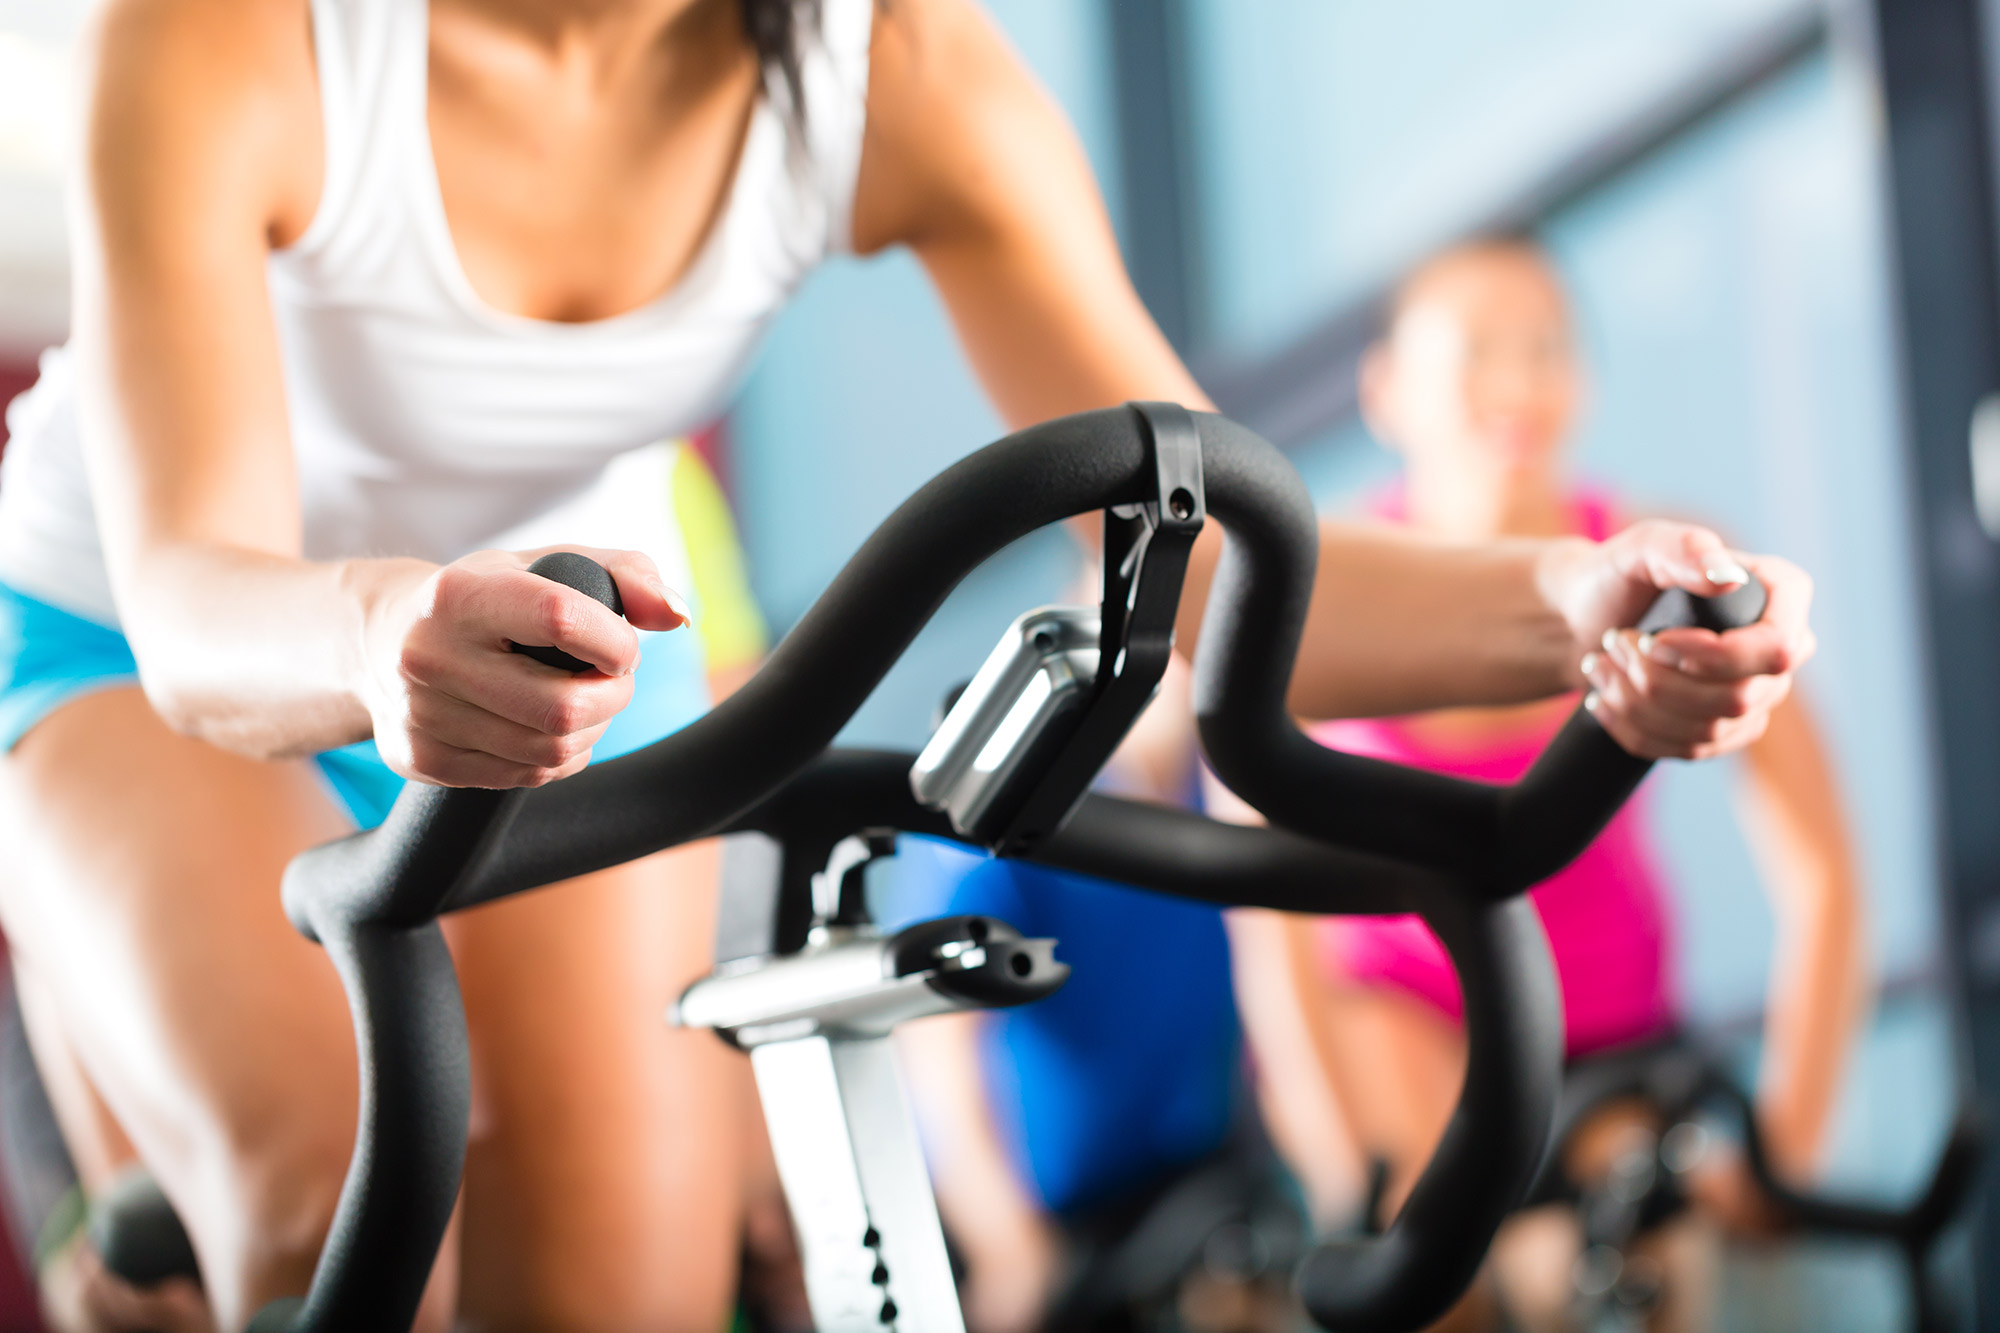 Indoor cycling leads the way among exercise classes, shows Moving Communities report